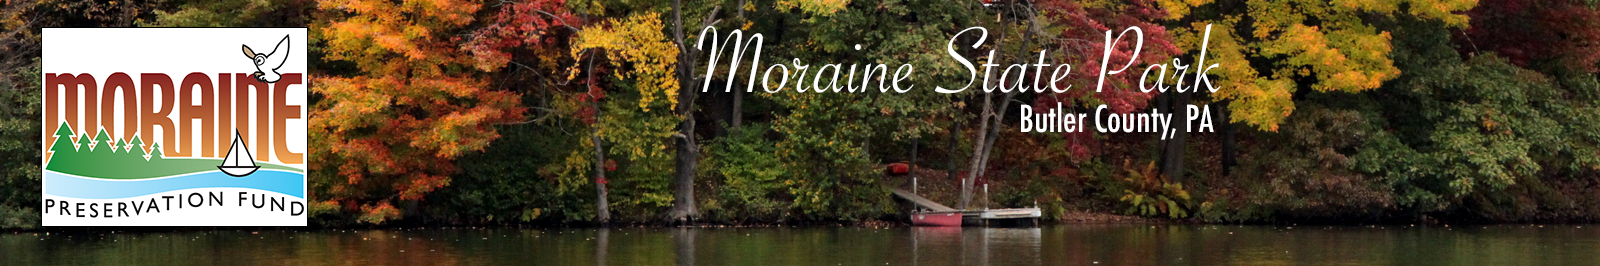 Moraine Preservation Fund